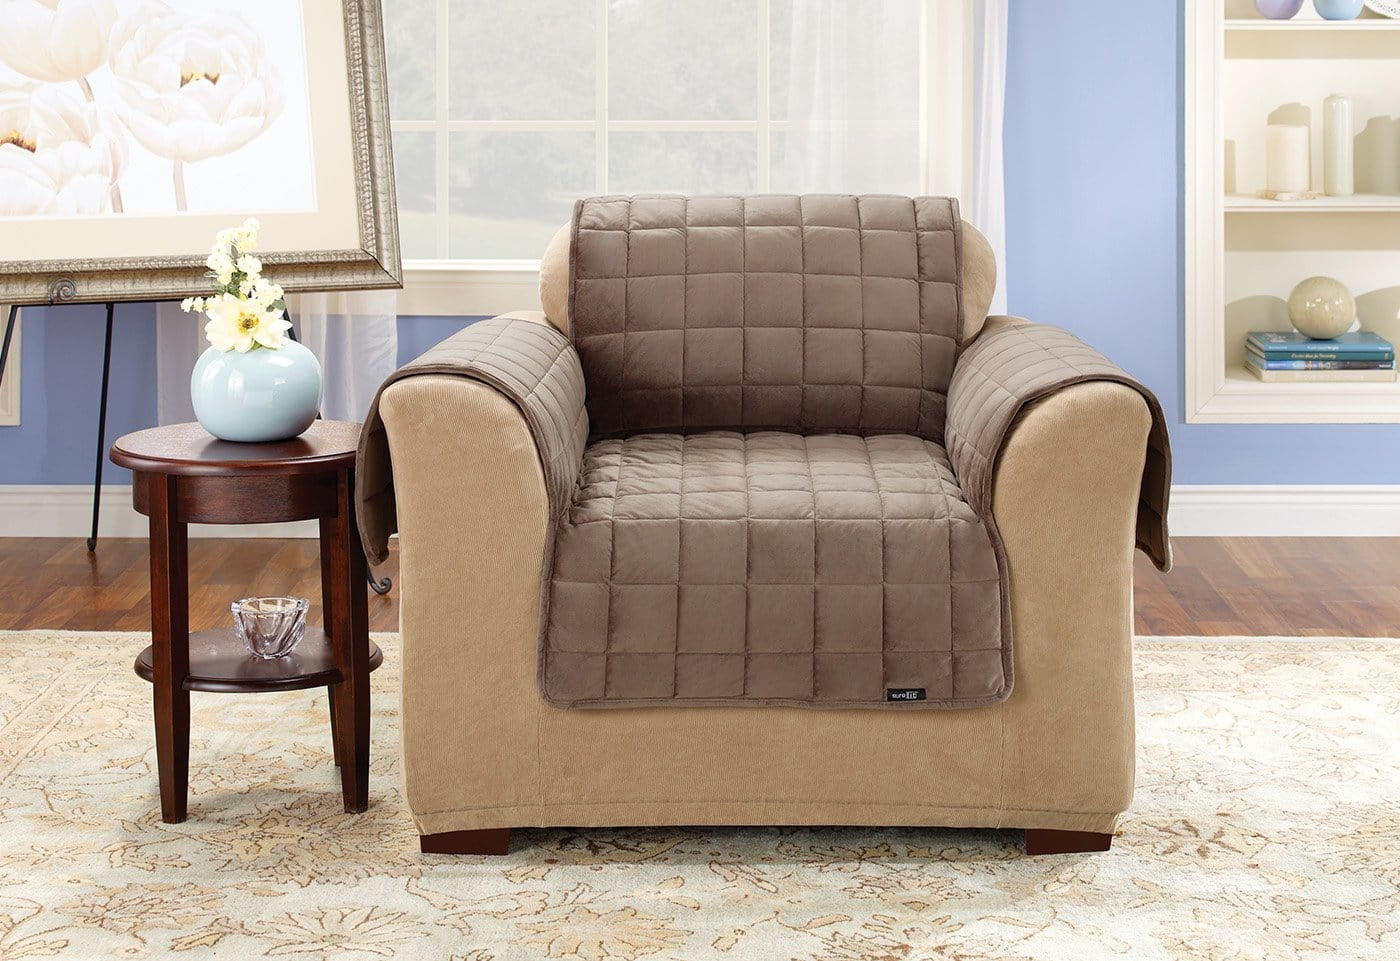 Deluxe Comfort Chair Furniture Cover With Arms Microban® Antimicrobial Pet Furniture Cover Machine Washable - Chair / Sable